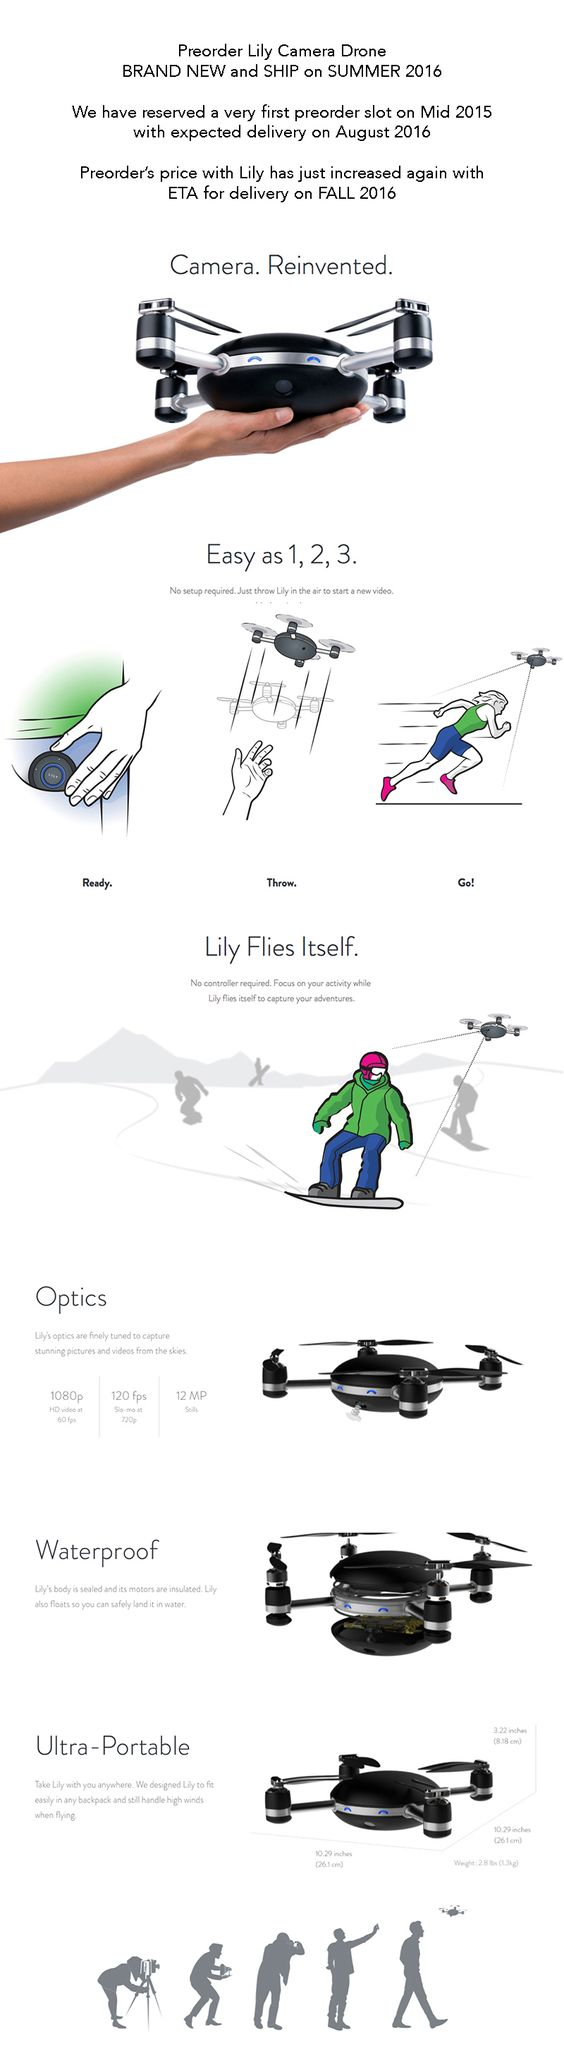 Check out robotic videographer Lily Drone: http://www.jedidrone.com/lily.htm